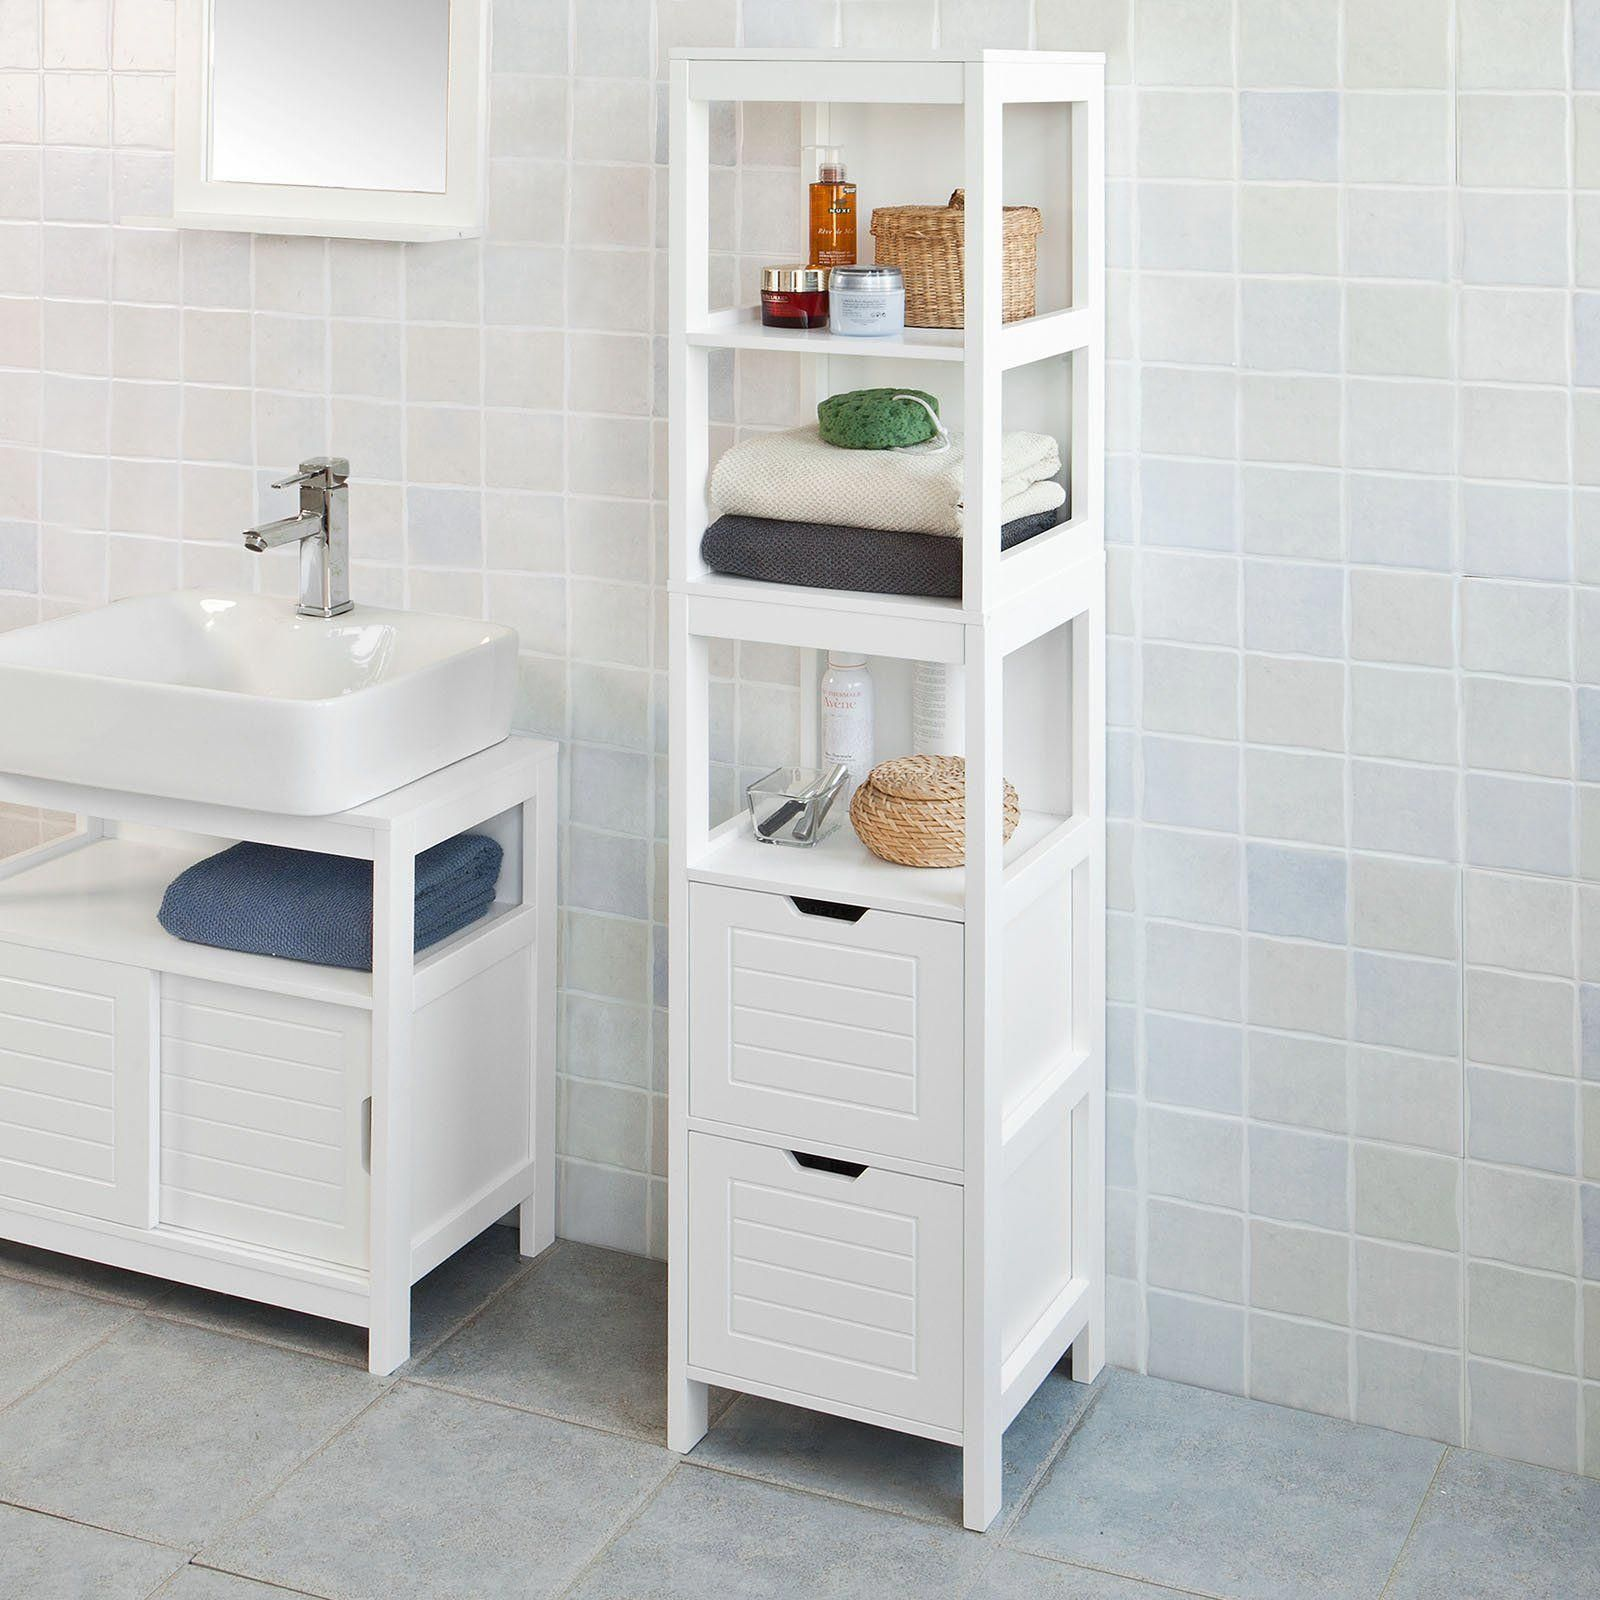 94 Premium Mid Sized Rustic Bathroom Ideas Designs Remodeling Pictures Tall Bathroom Storage Cabinet Tall Bathroom Storage White Bathroom Storage Cabinet